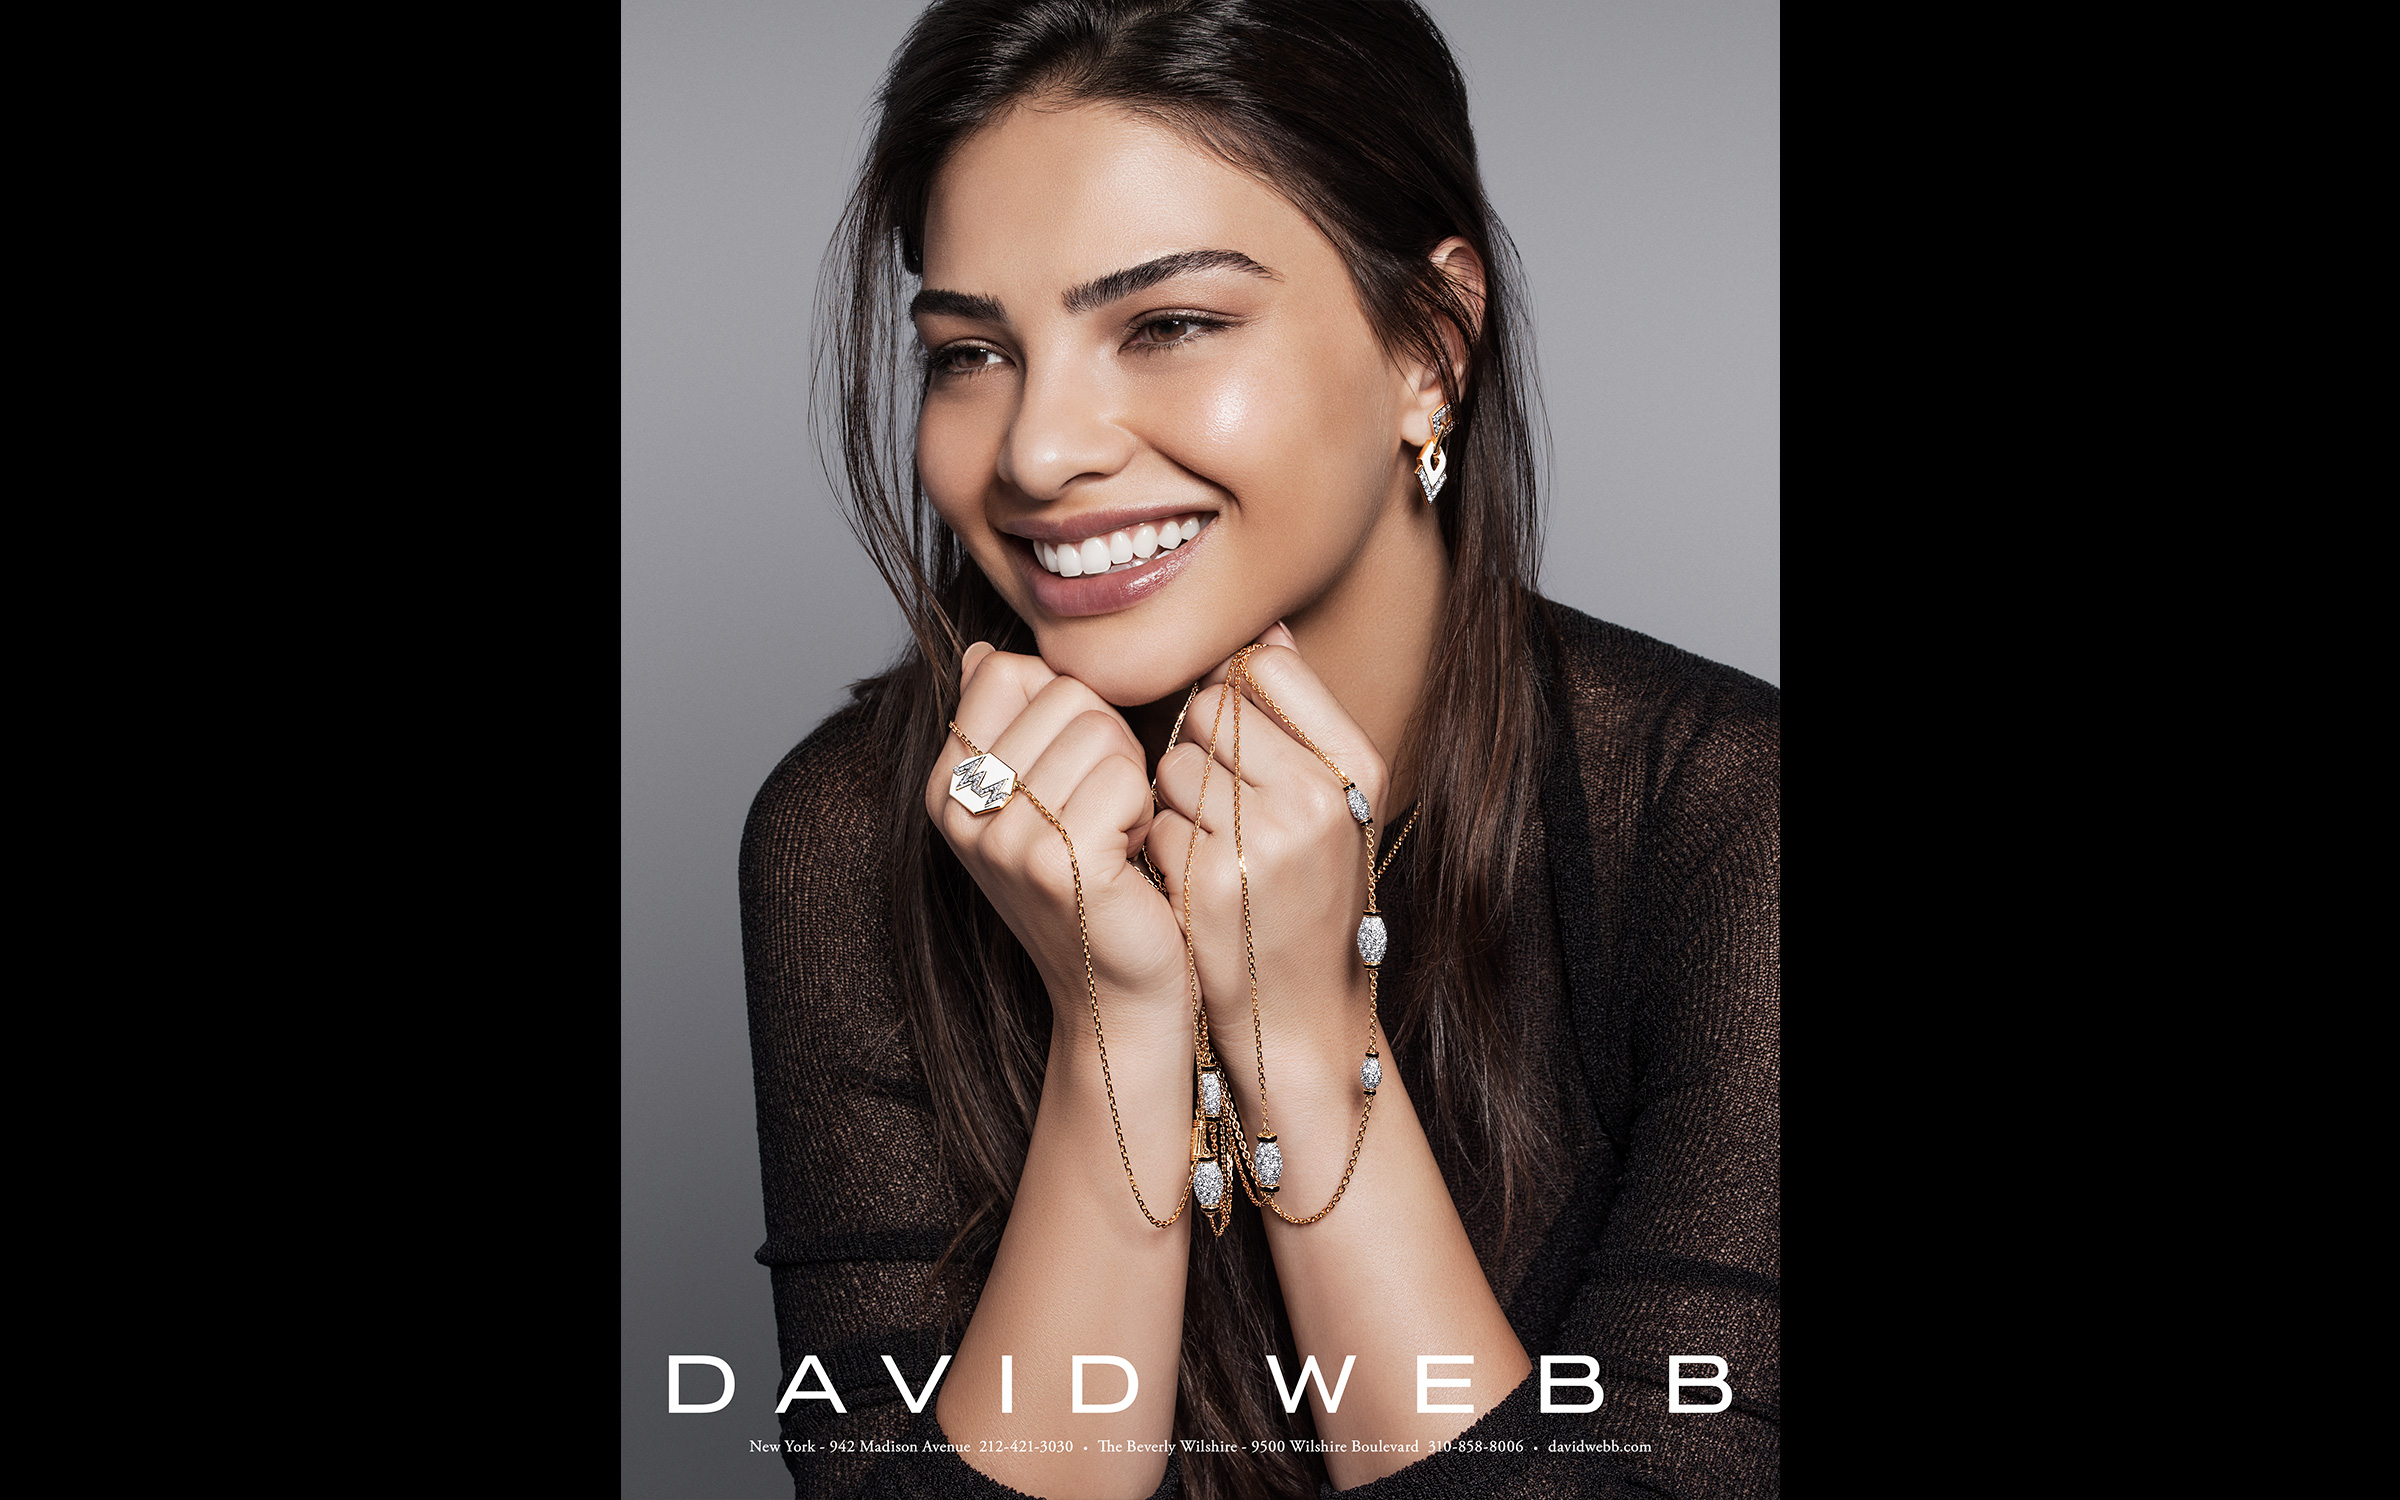 Jewelry Advertising campaign photography for David Webb by Zachary Goulko